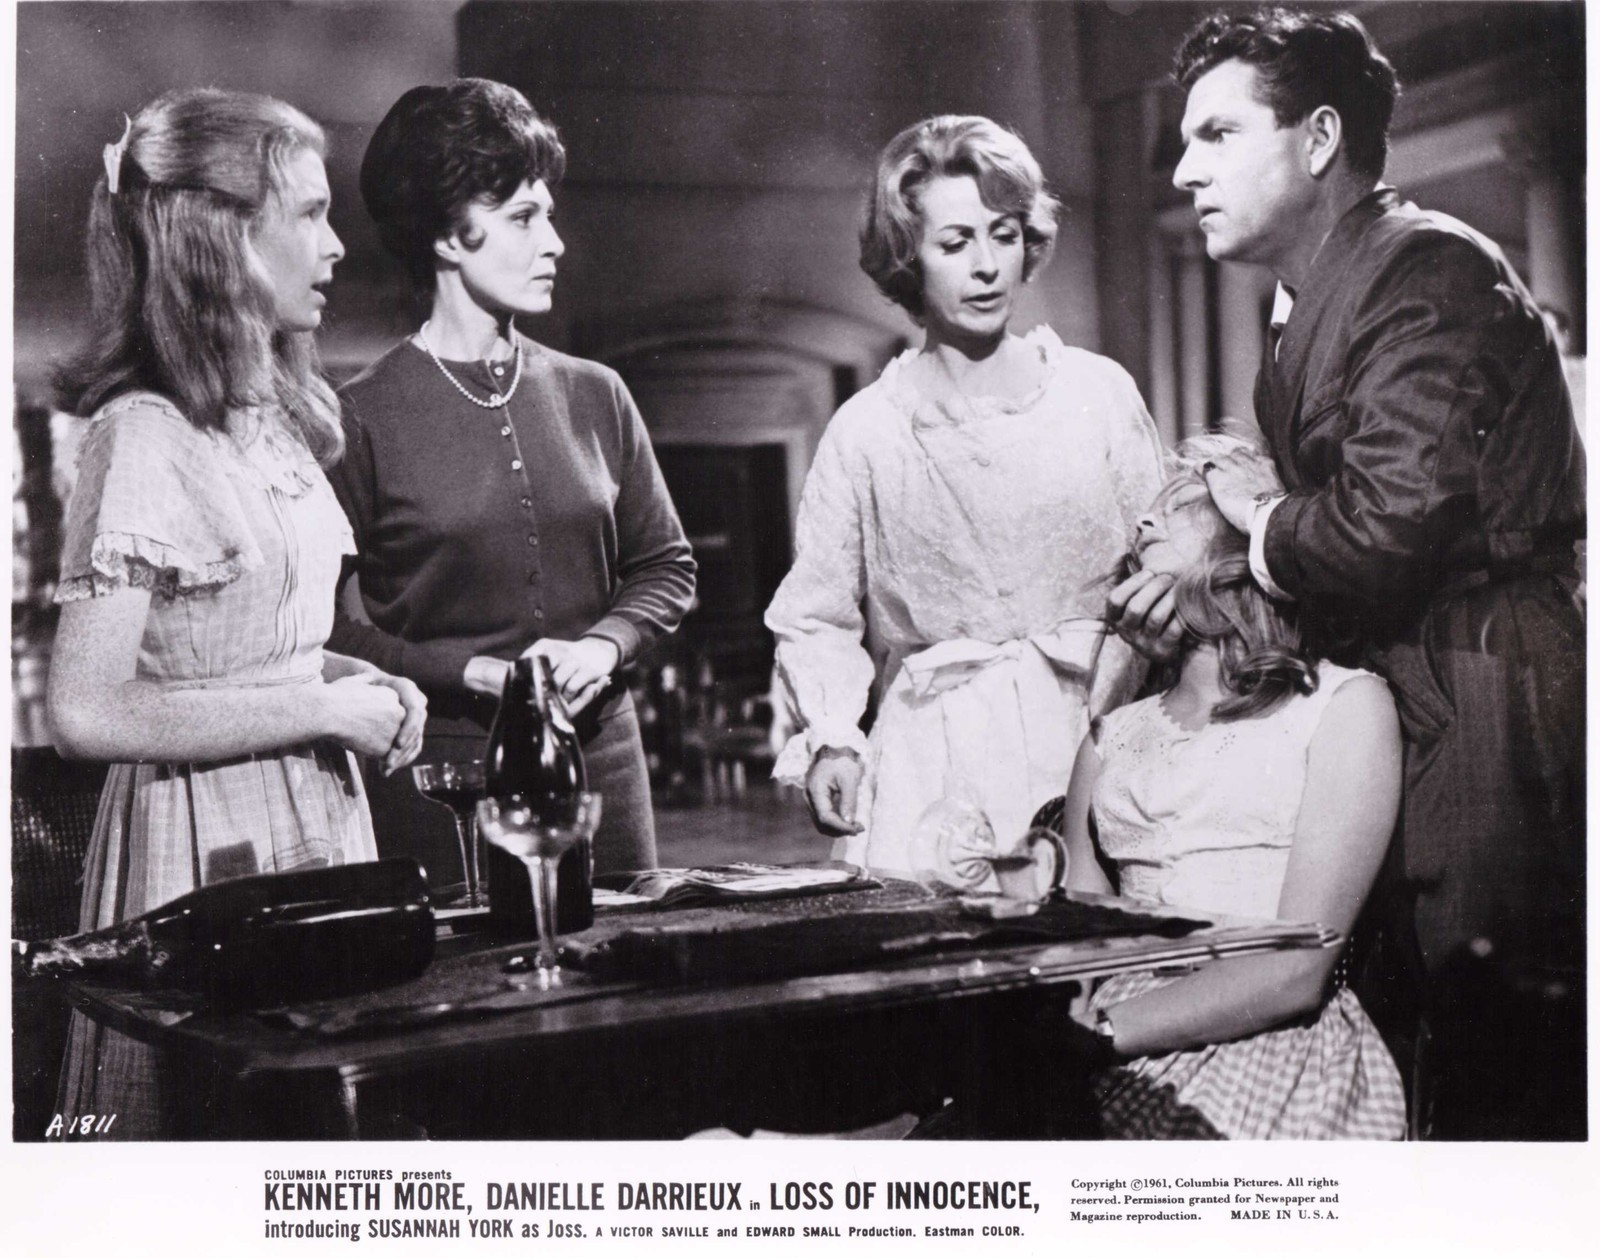 Jane Asher, Danielle Darrieux, Kenneth More, Claude Nollier, and Susannah York in The Greengage Summer (1961)